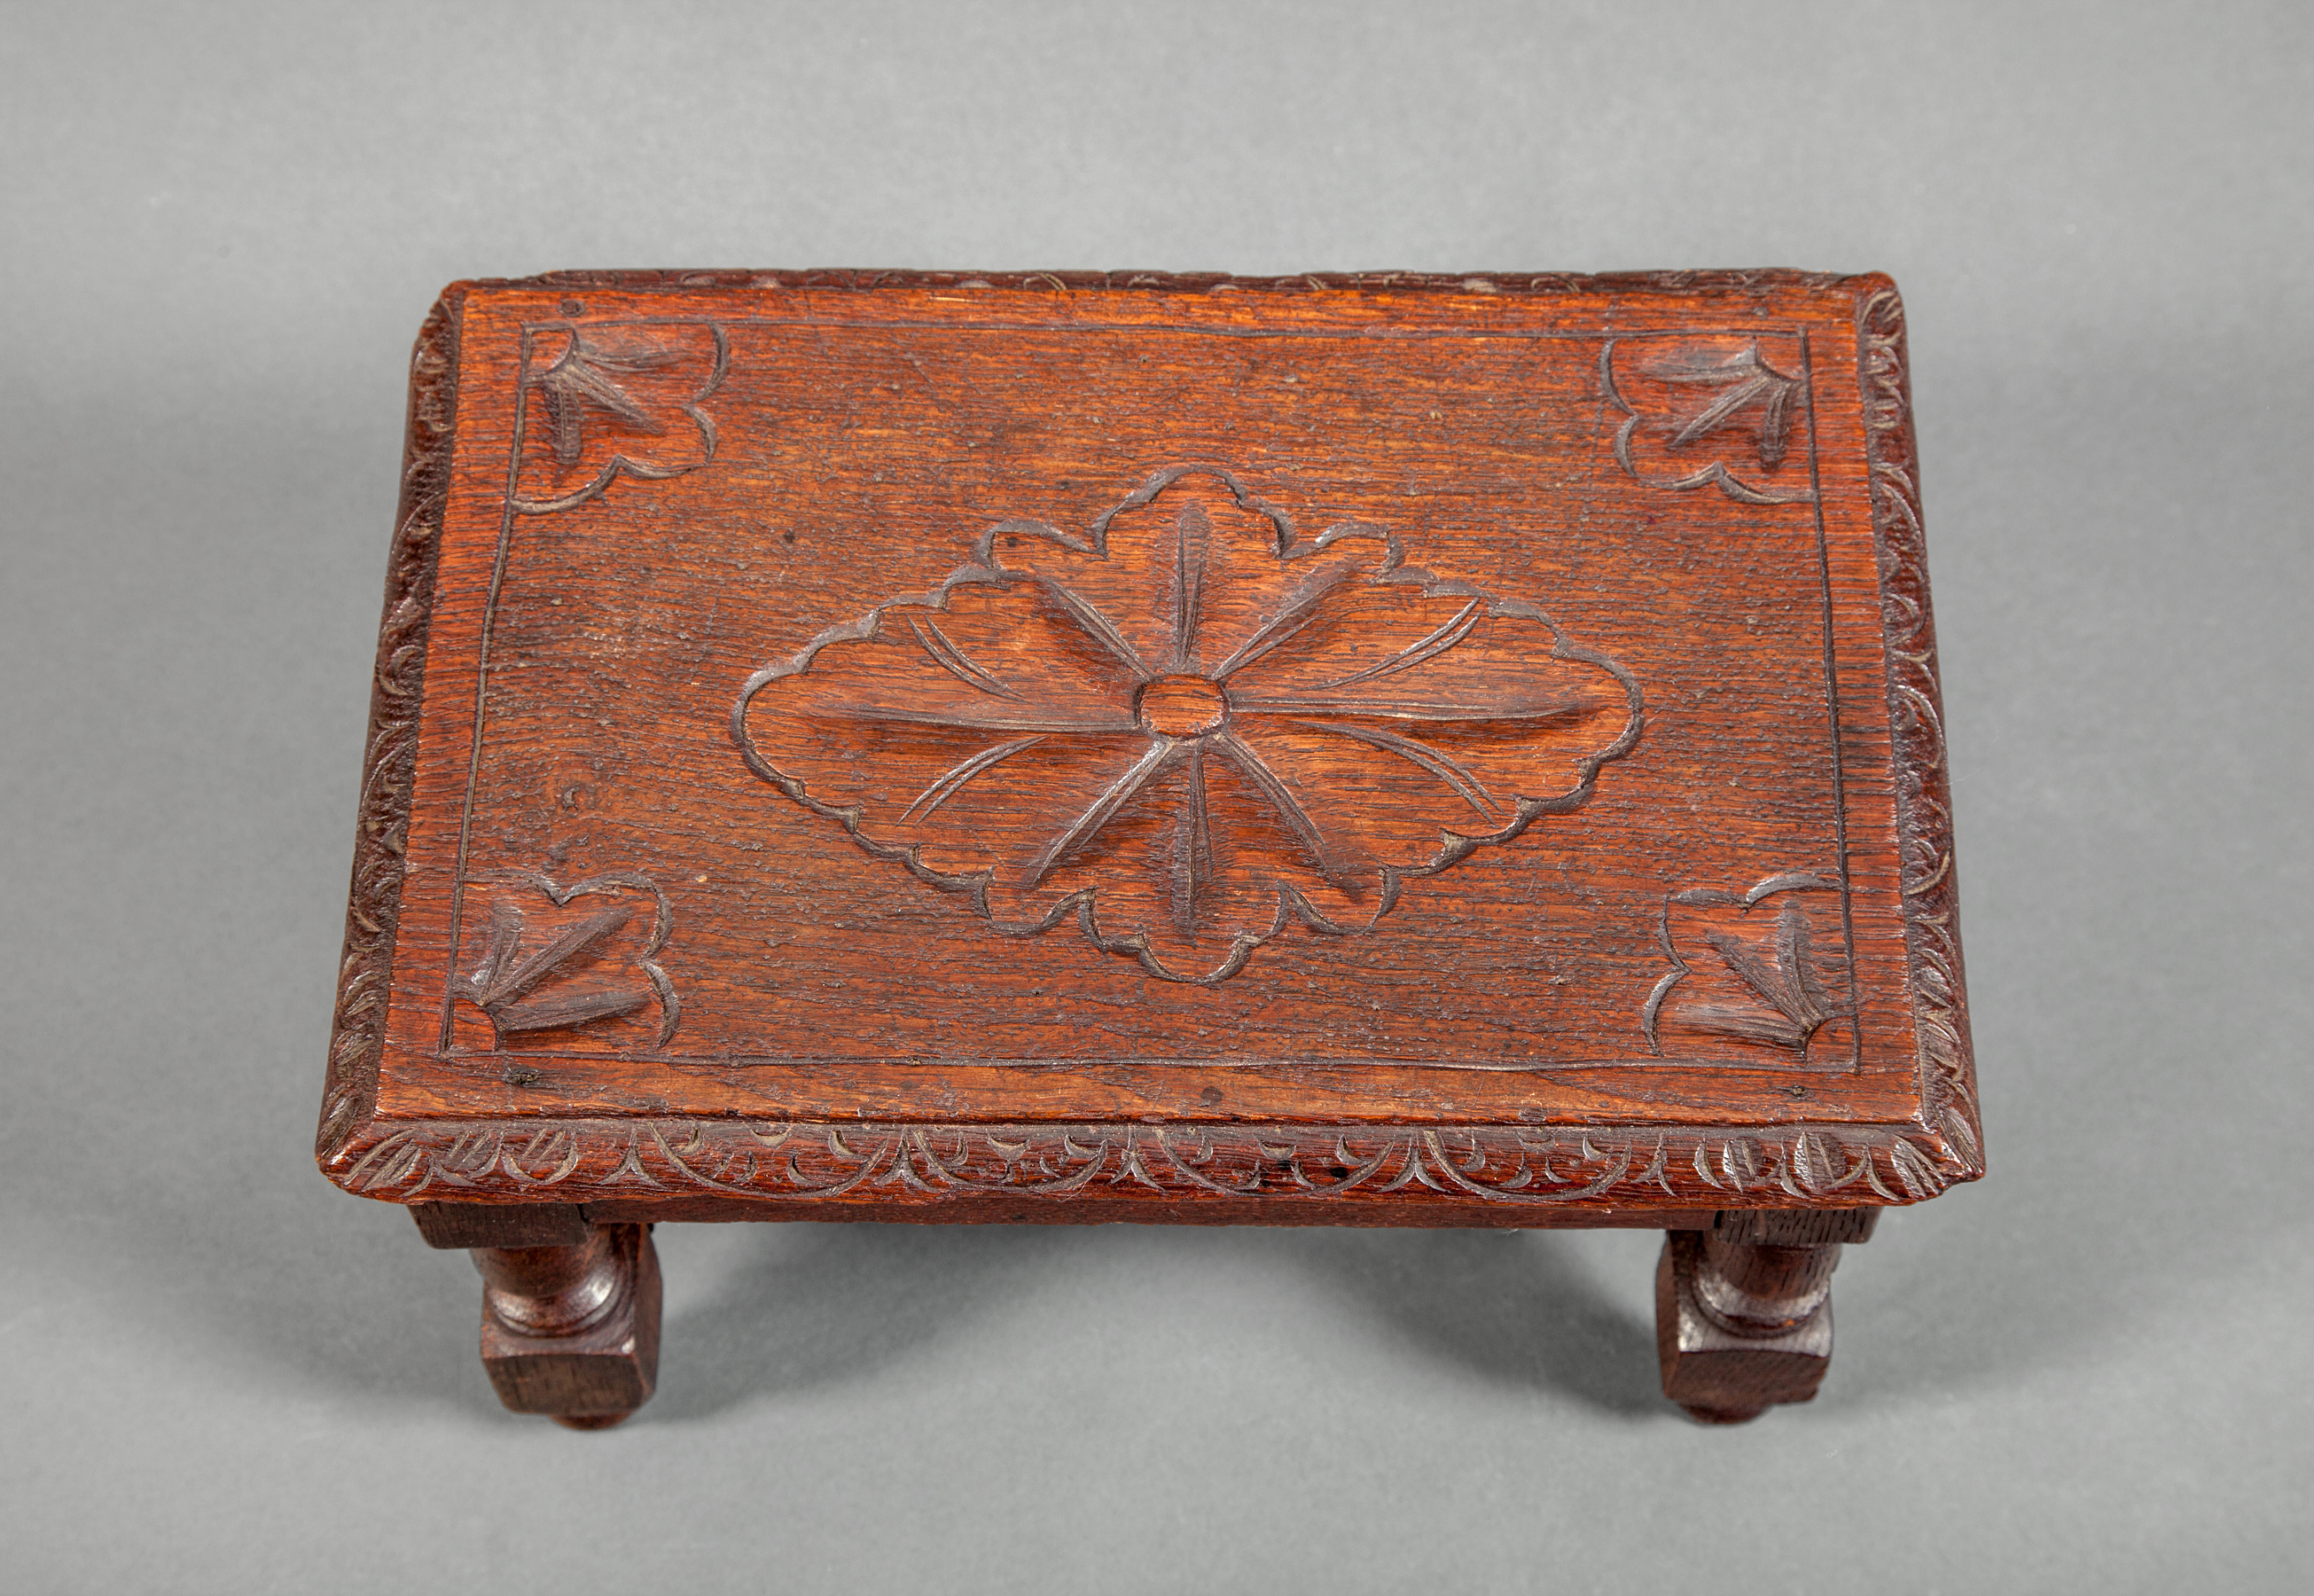 English Oak Miniature Stool with Flower Design on Top